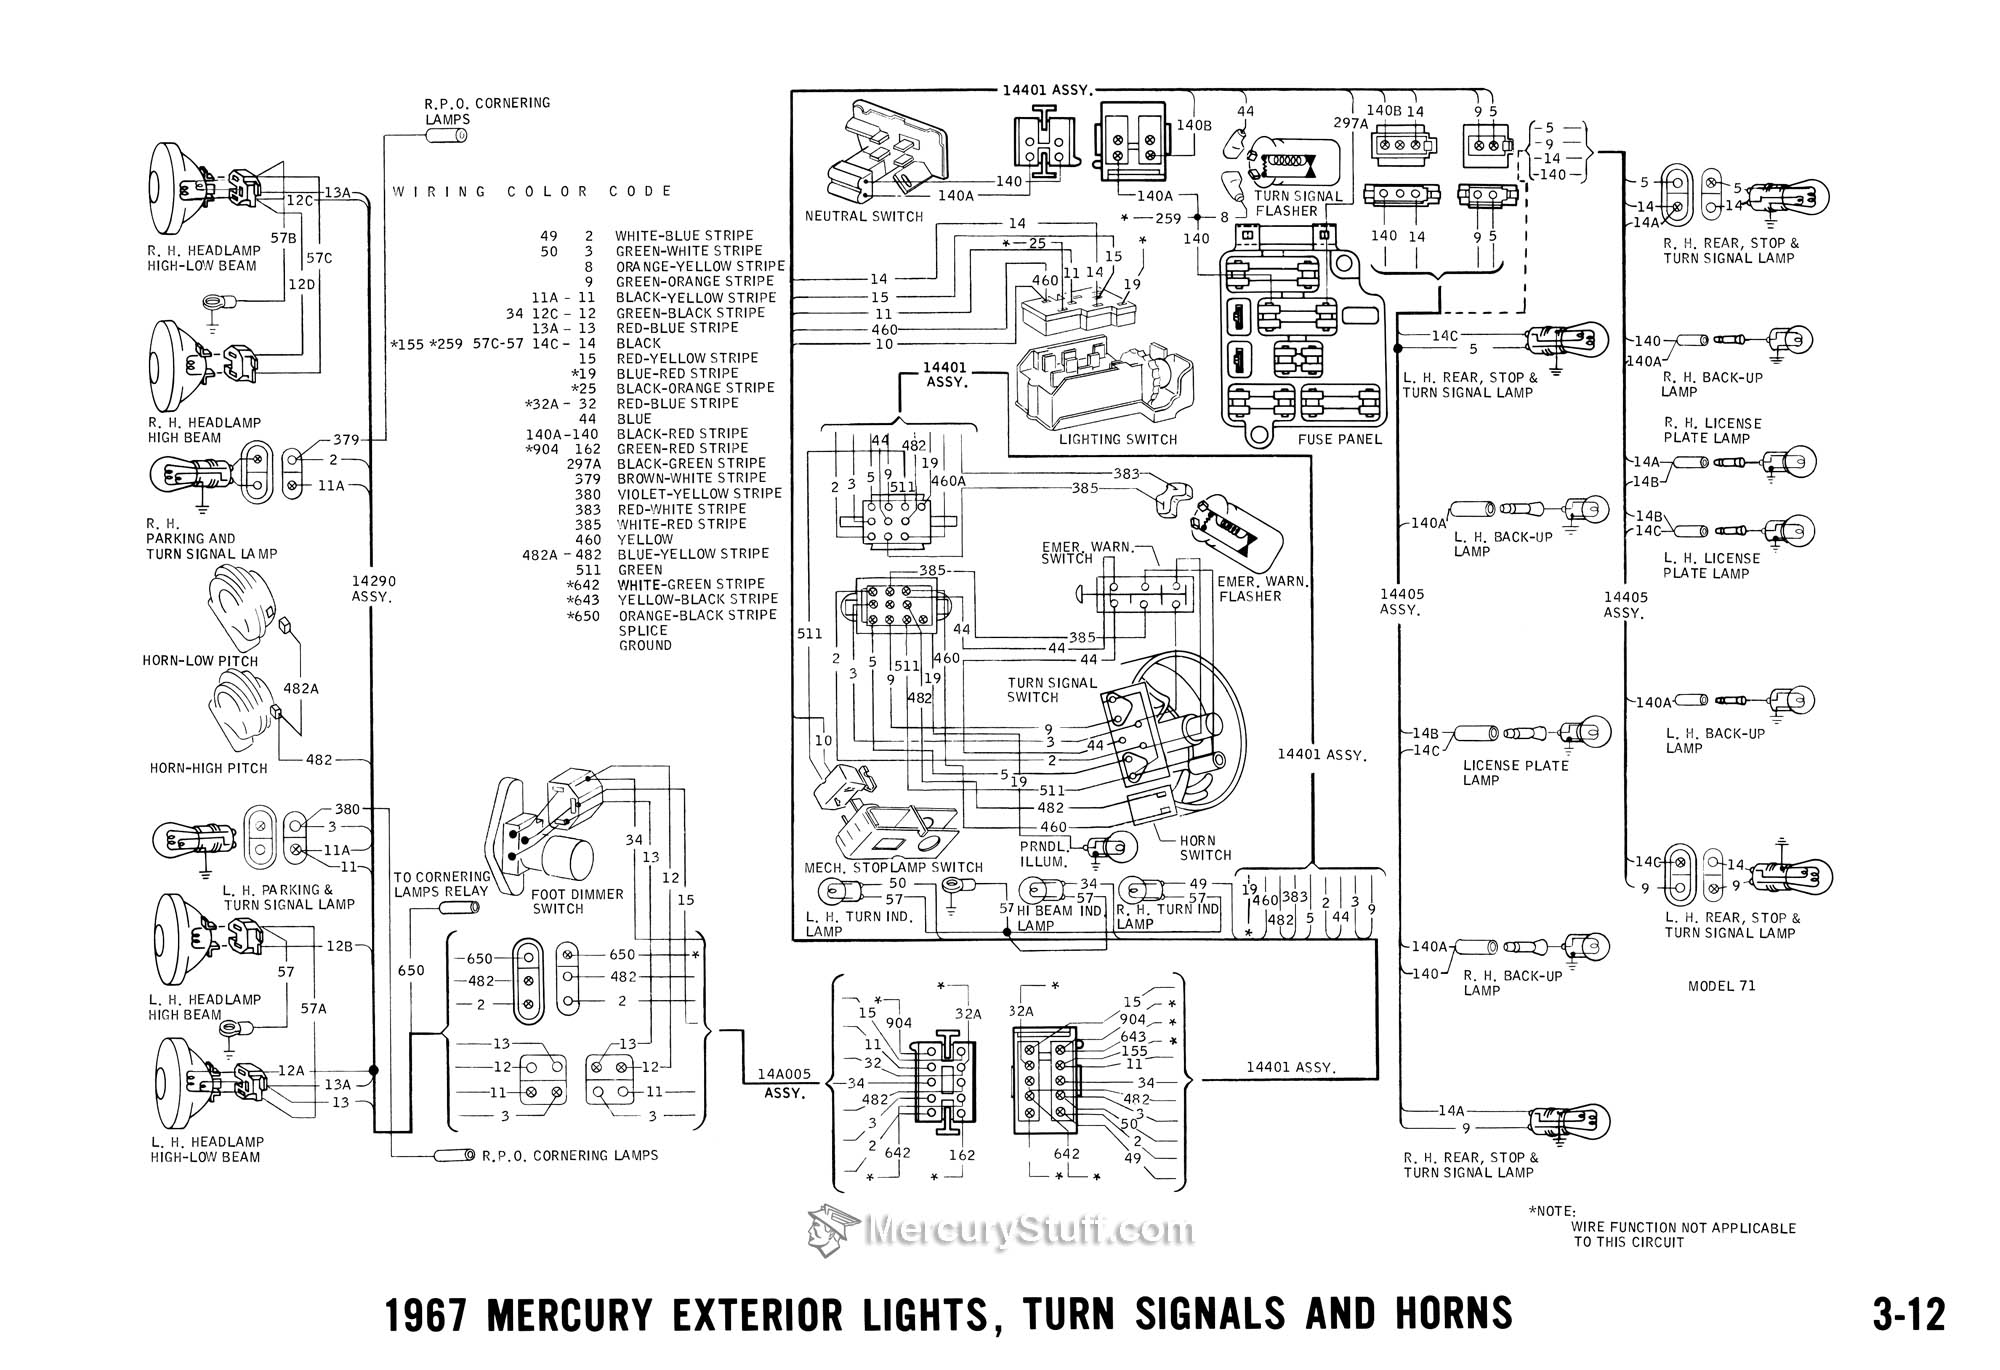 1967 mercury exterior lights turn signals horns wiring diagram 2006 mercury grand marquis the wiring diagram mercury 14 pin wiring harness diagram at readyjetset.co